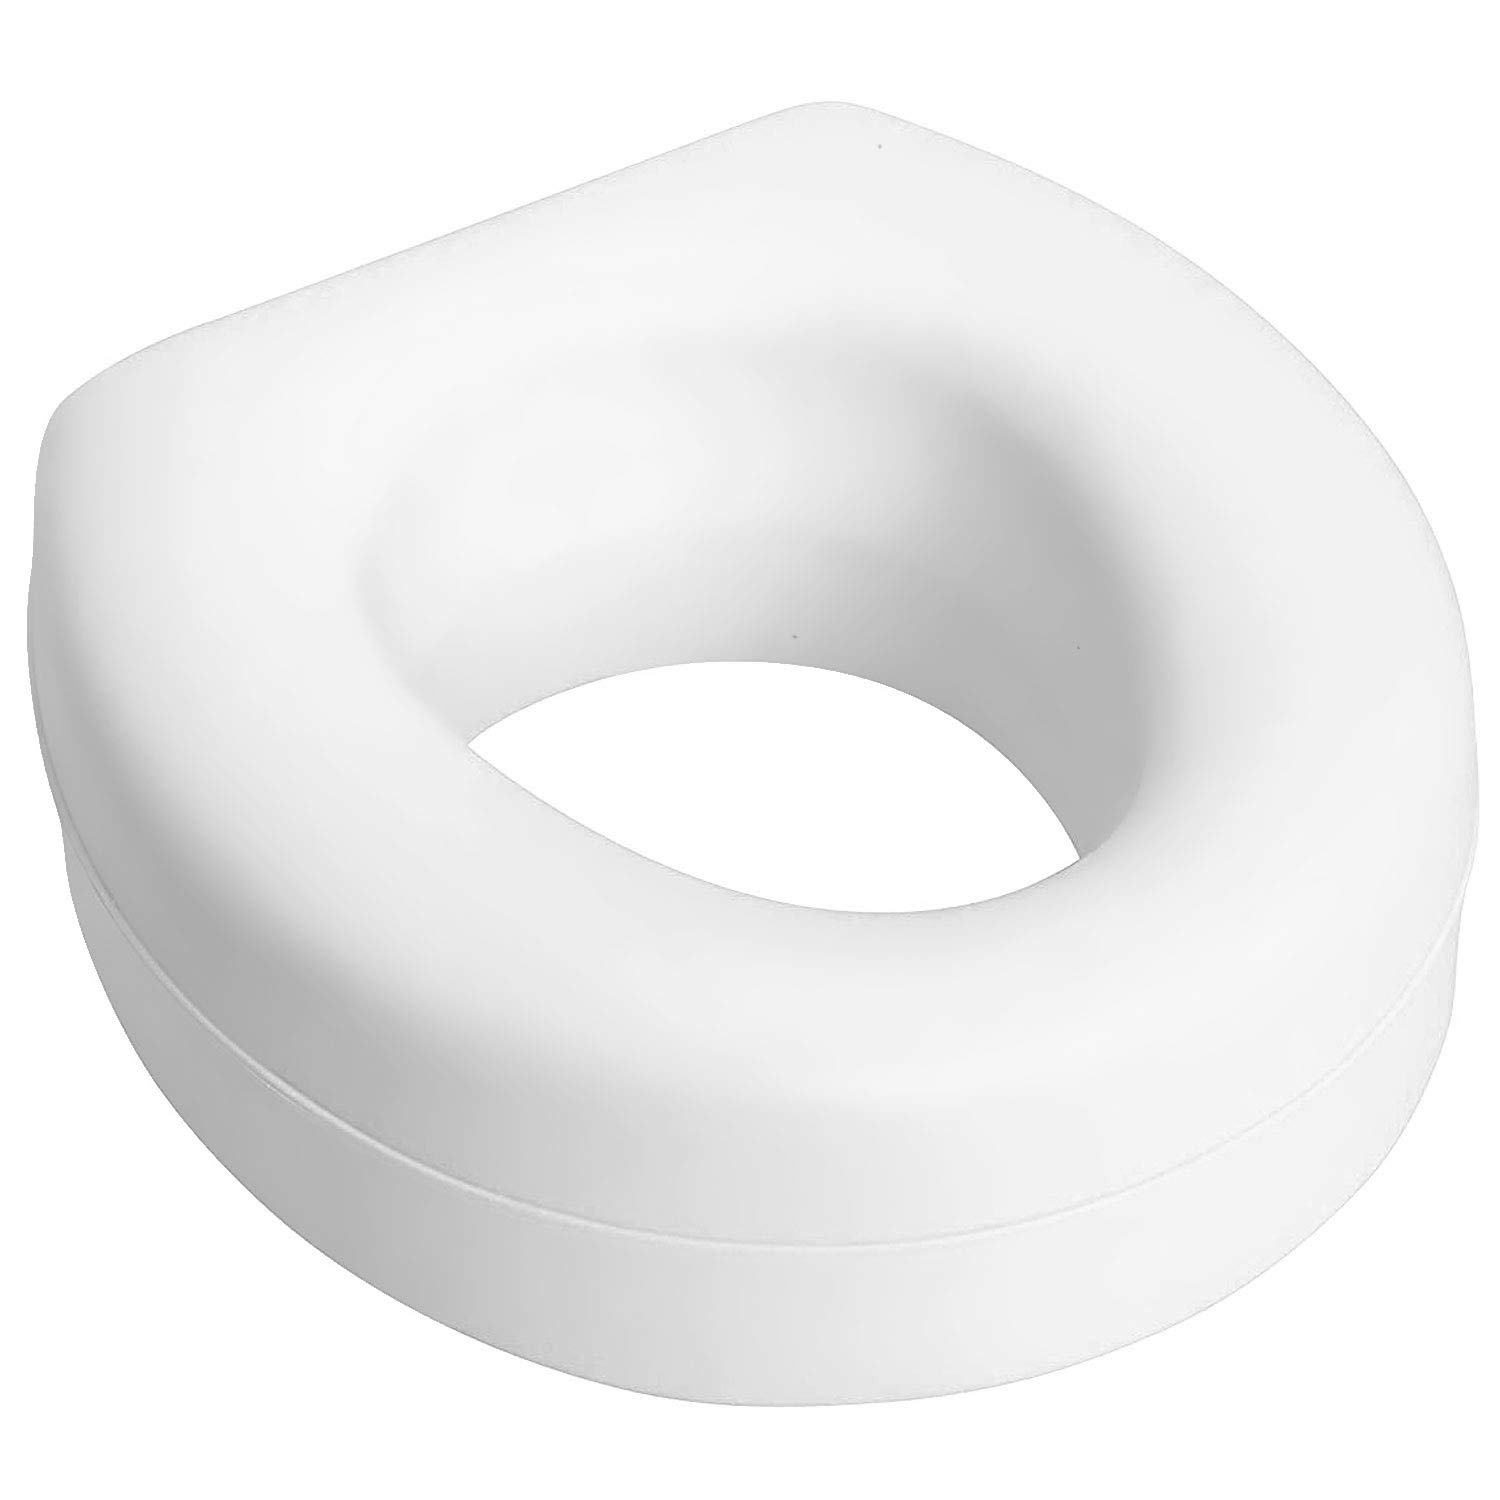 HealthSmart Portable Elevated Raised Toilet Seat Riser, White by HealthSmart